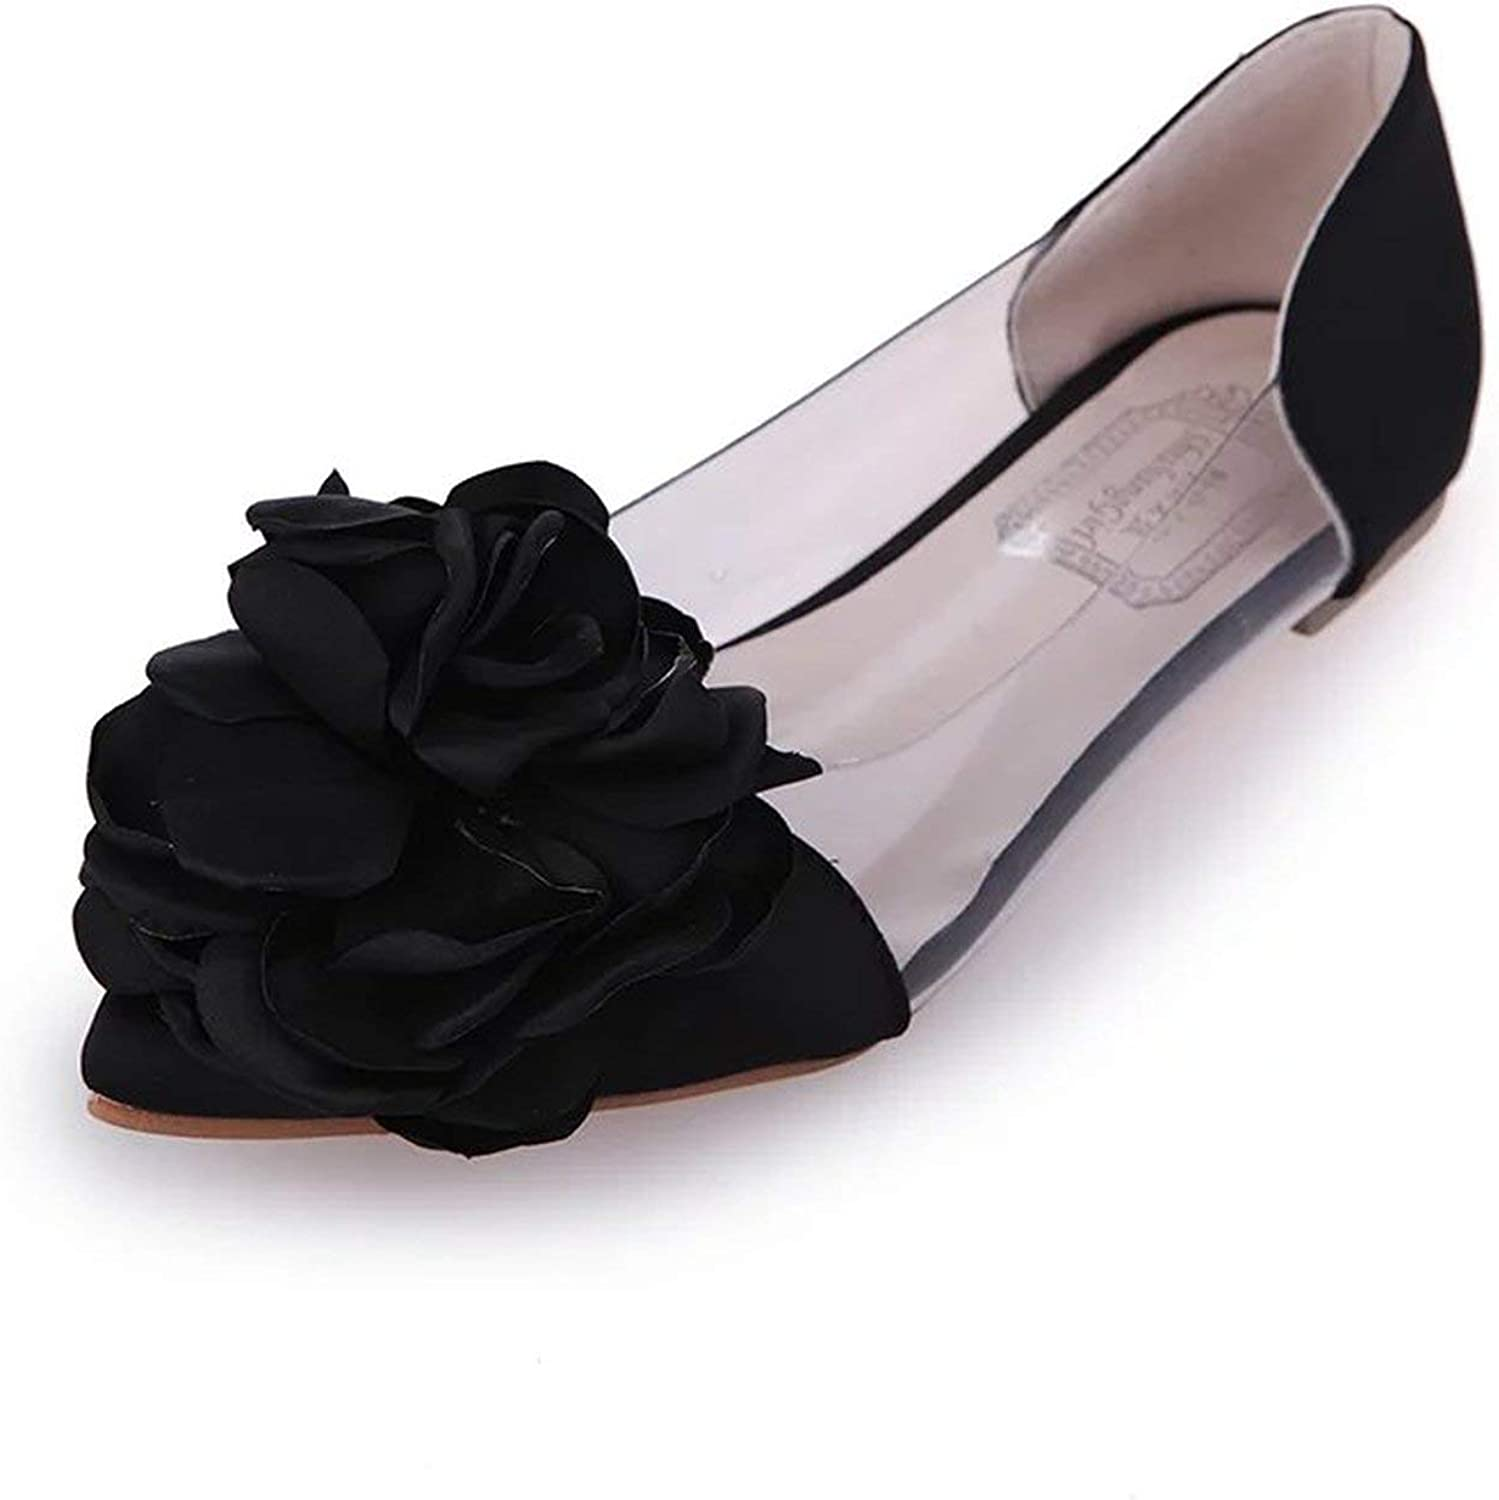 White Island Soft Comfortable shoes Sweet Flower Pointed Women's shoes Flat Heel Single shoes Shallow Mouth Flat shoes Q303,Black,4